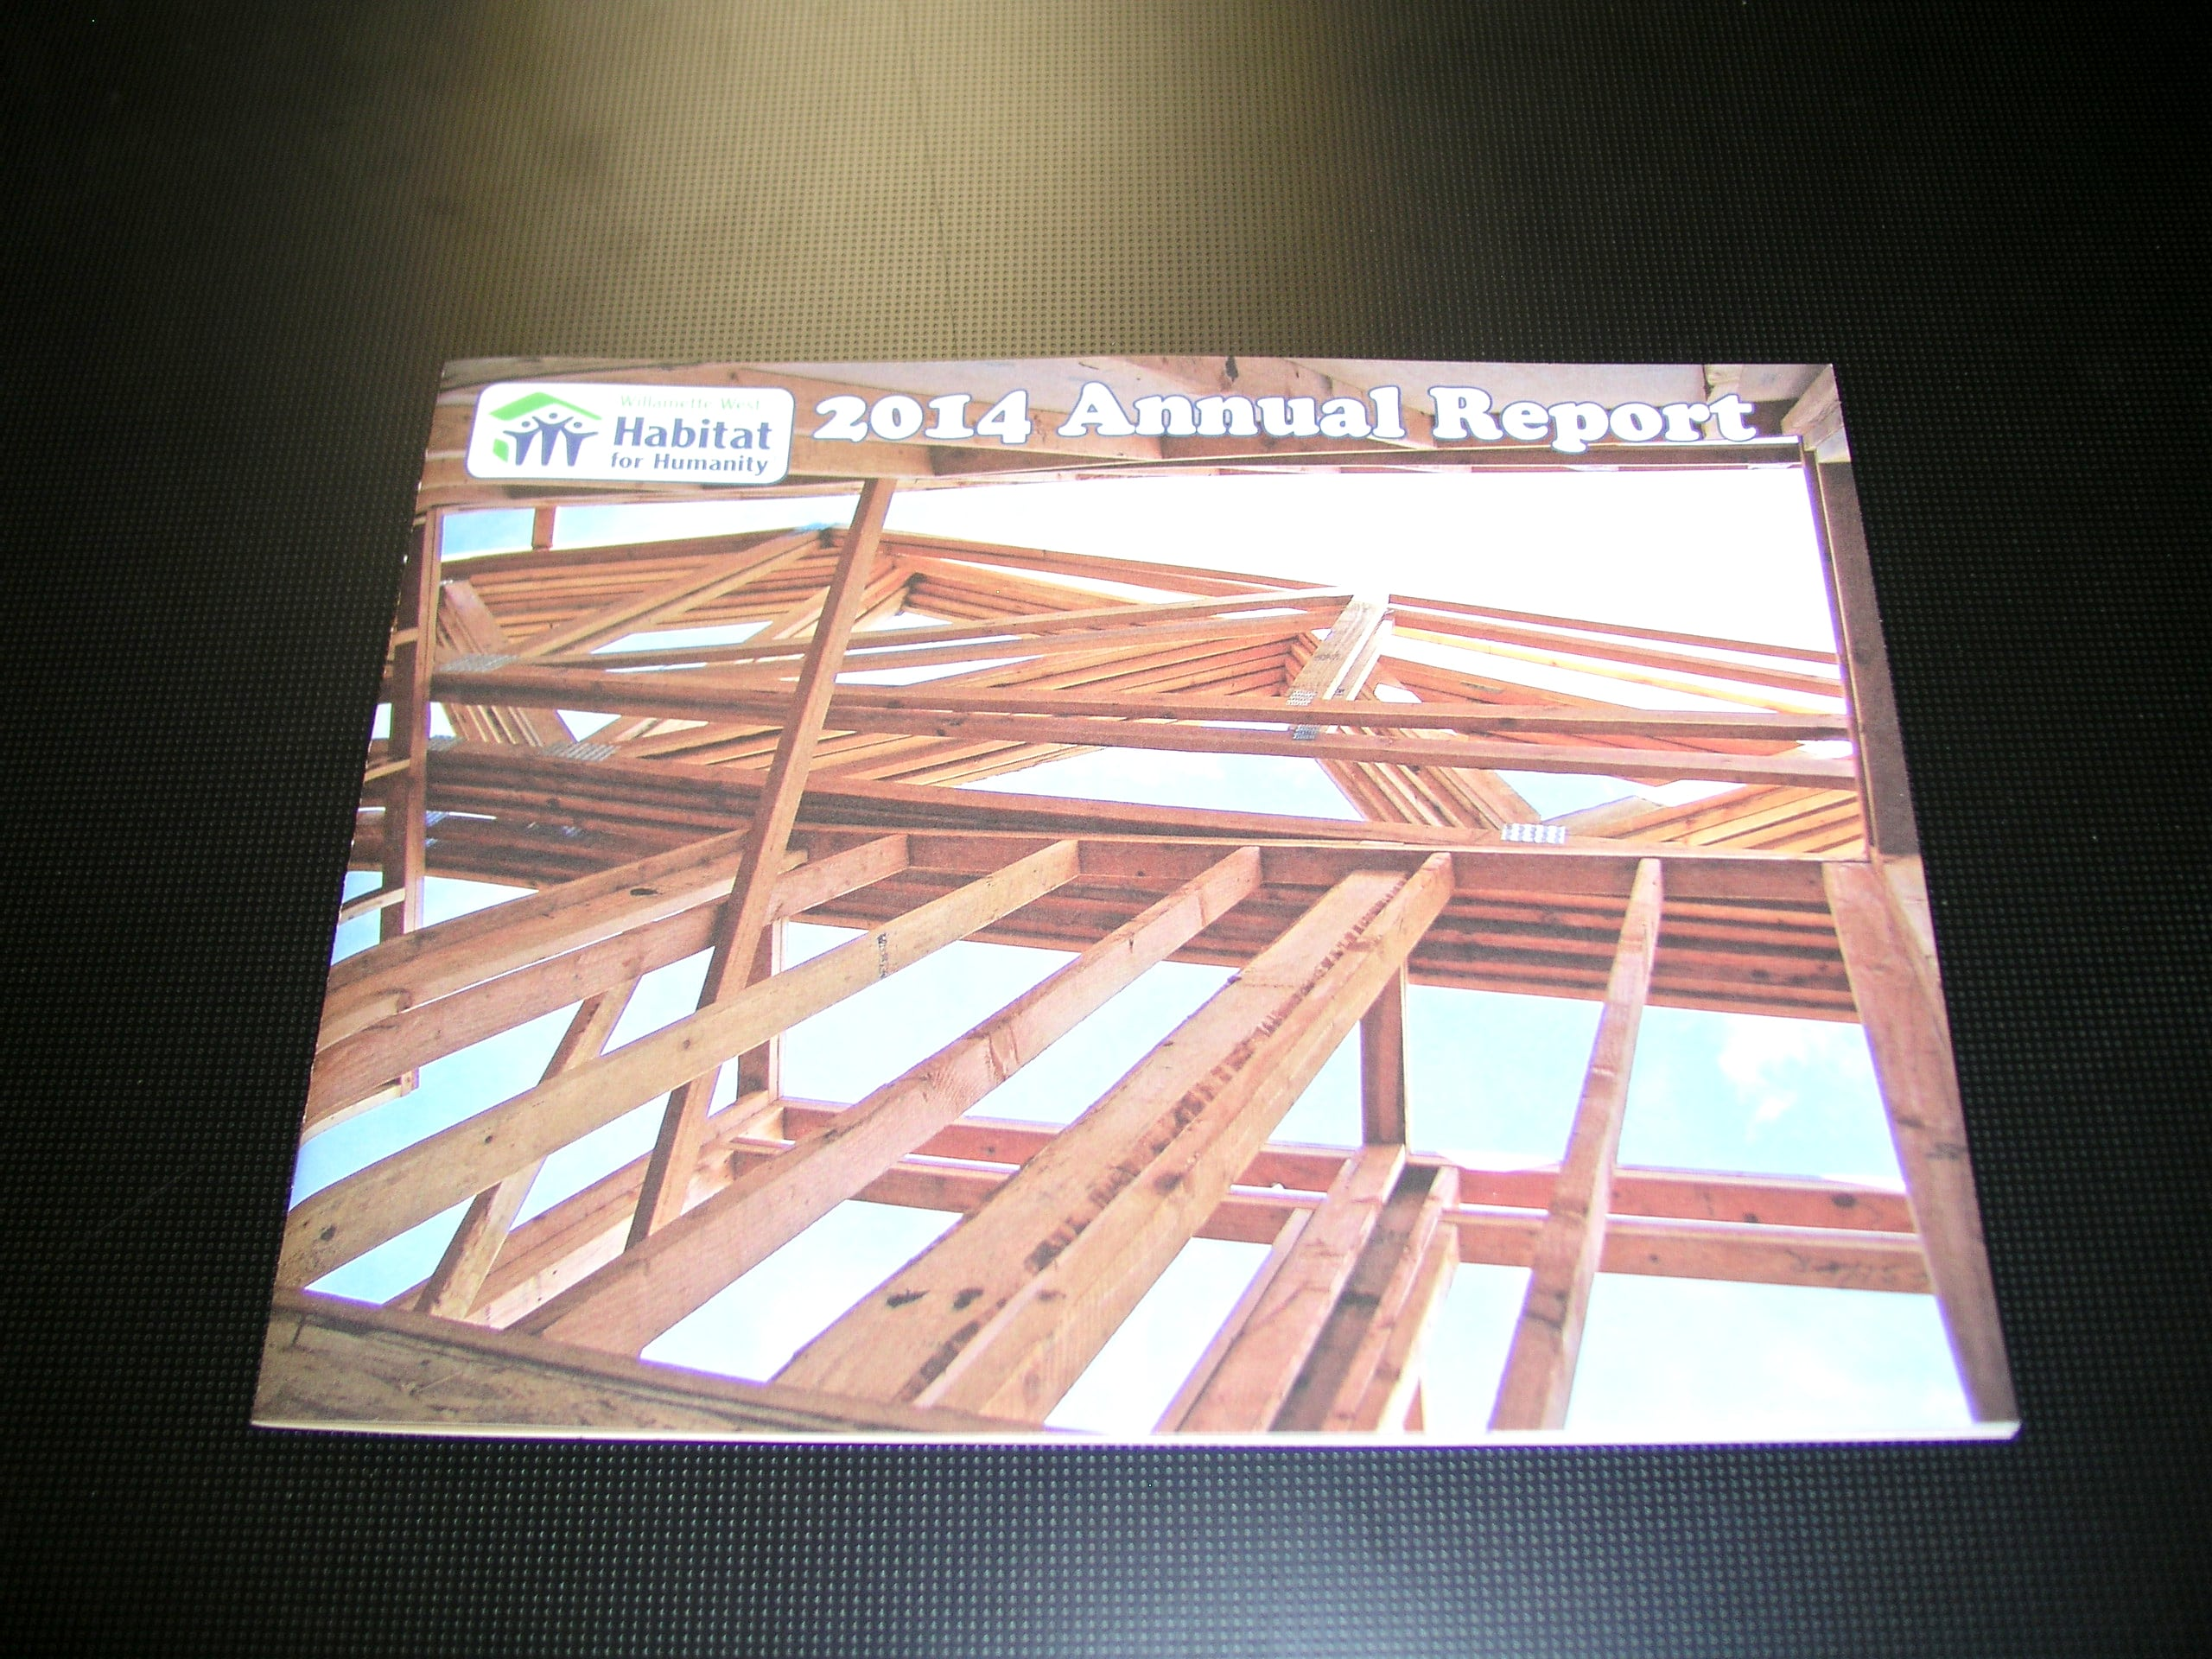 Habitat for Humanity Annual Report